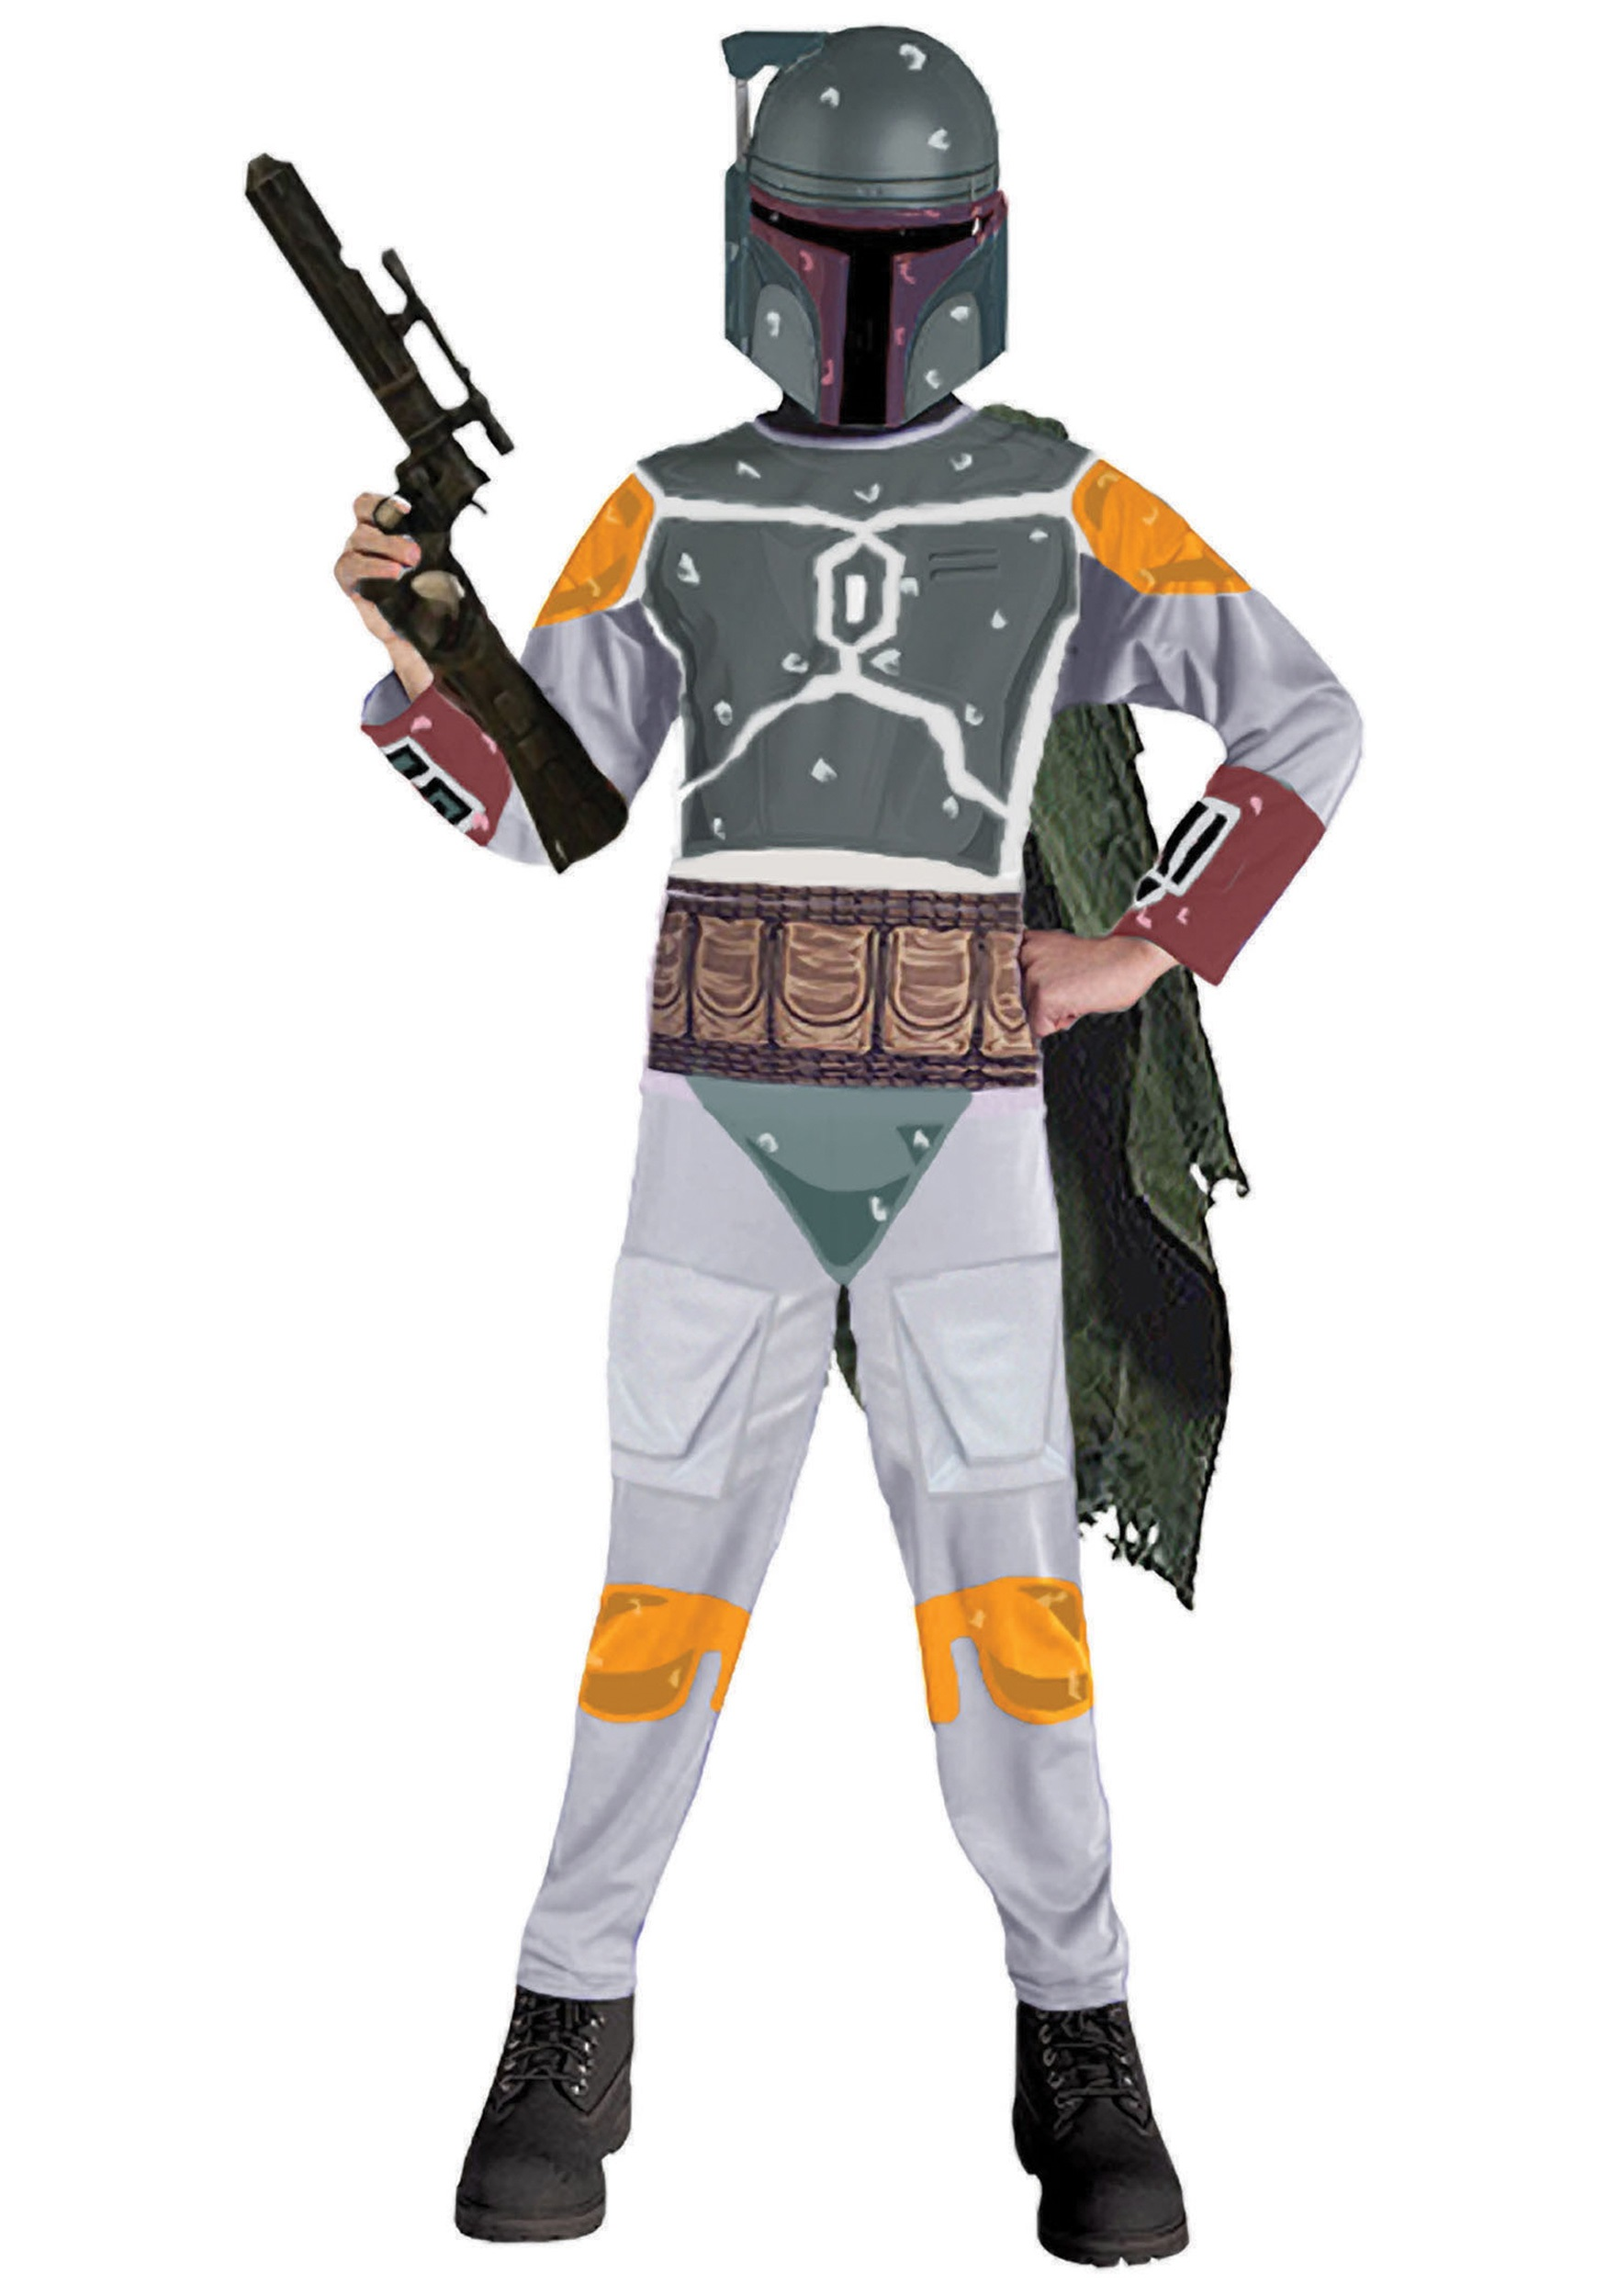 Kids Star Wars Boba Fett Costume RU883036